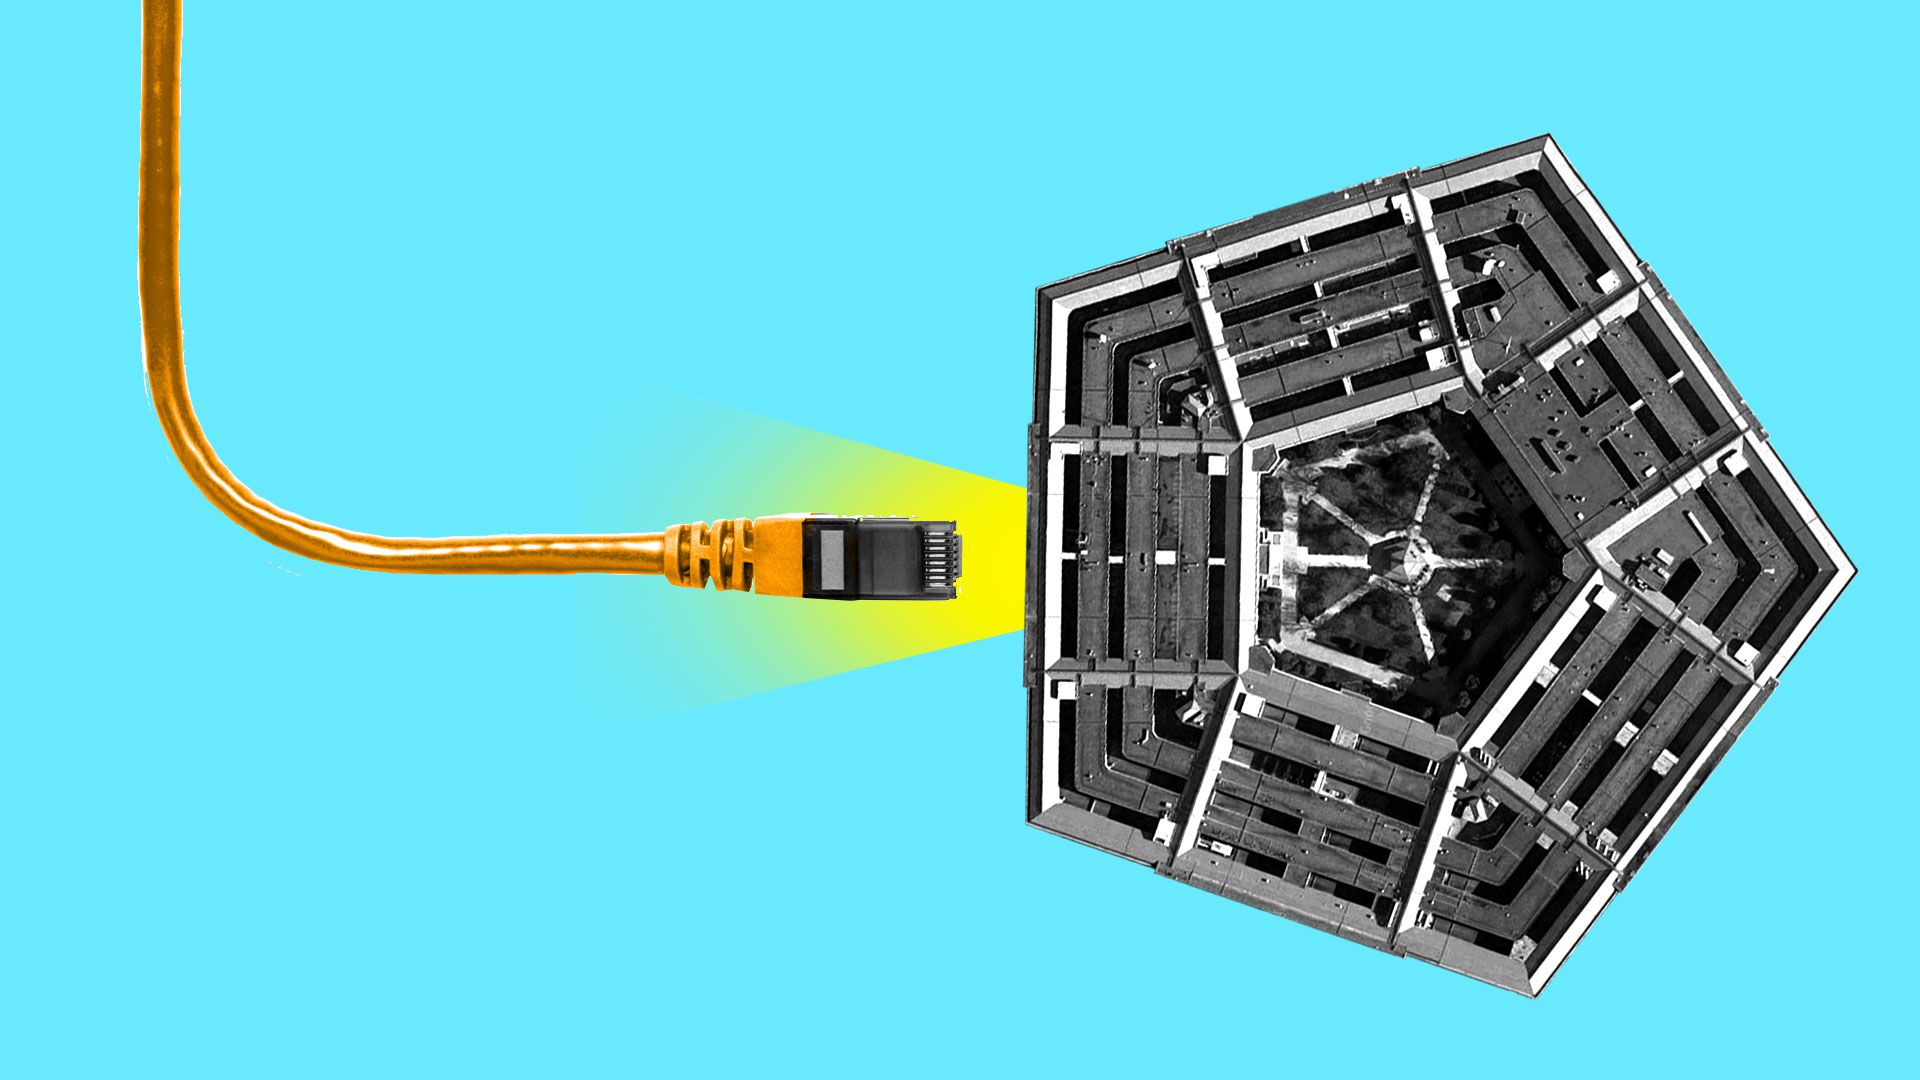 An illustration of an ethernet cable plugging into the Pentagon